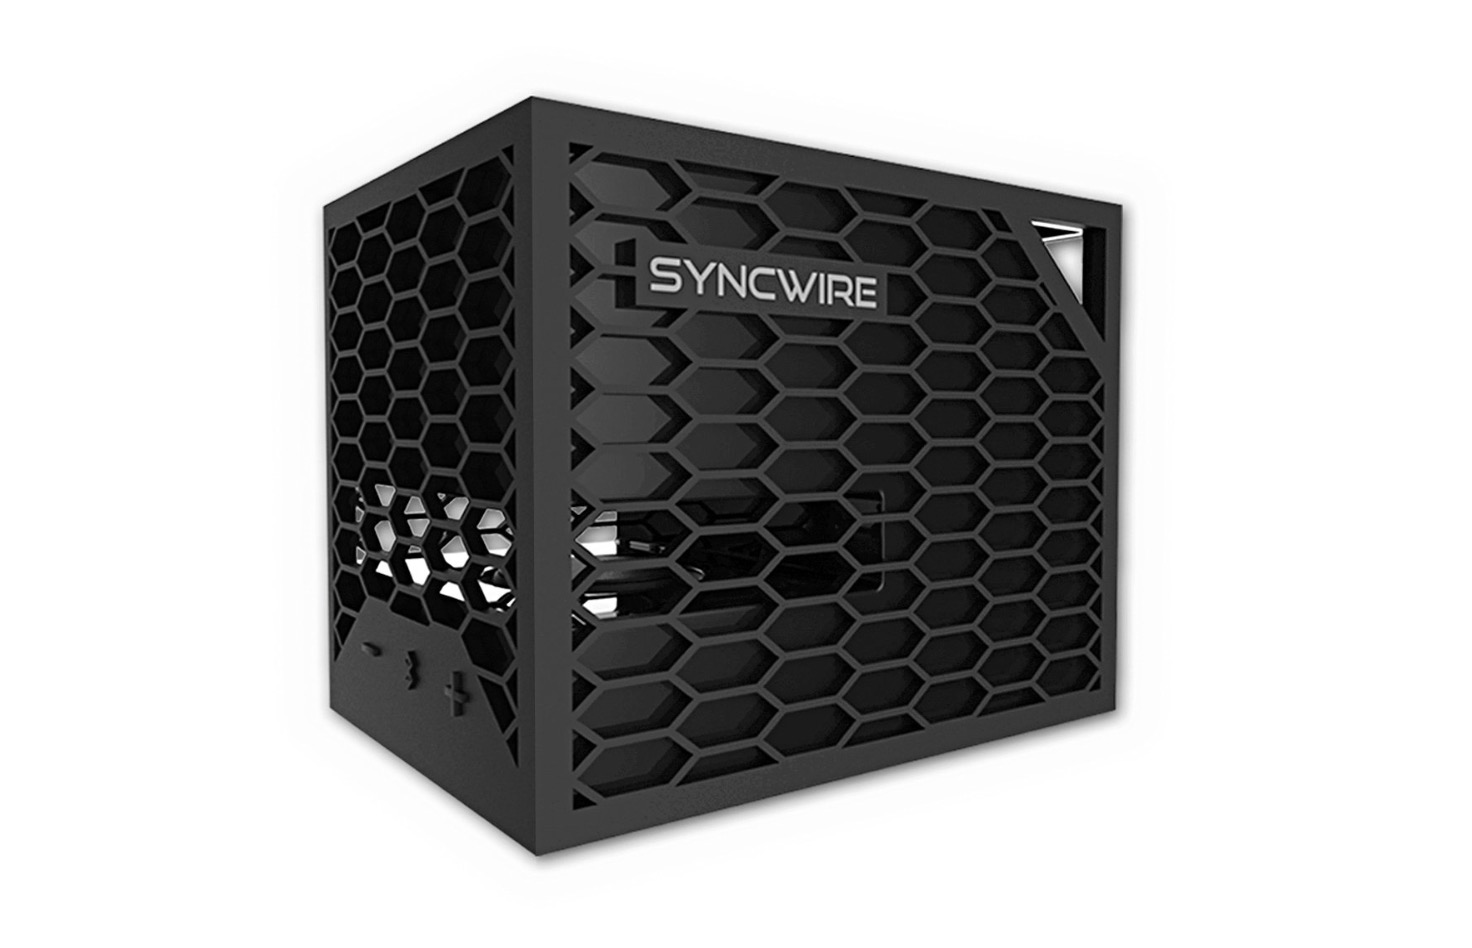 Syncwire 2